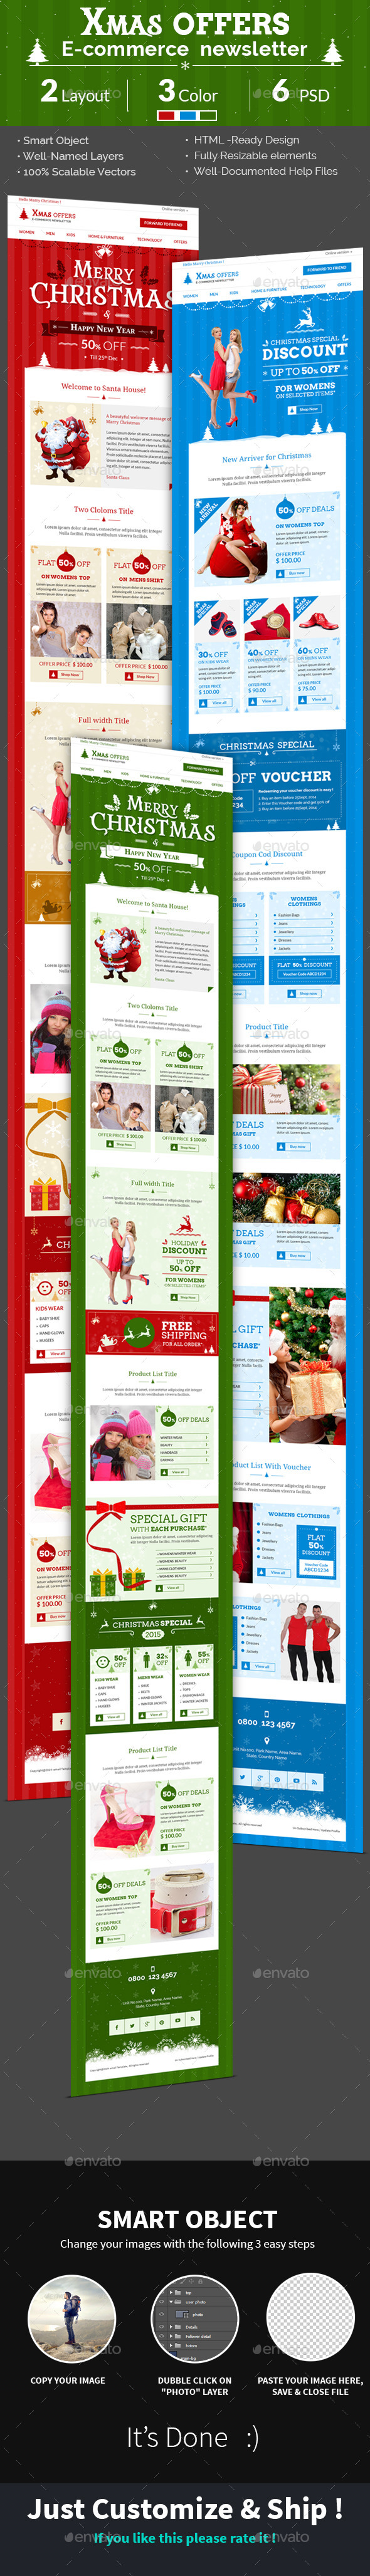 GraphicRiver Christmas Shopping Offers e-Commerce Newsletter 9470130